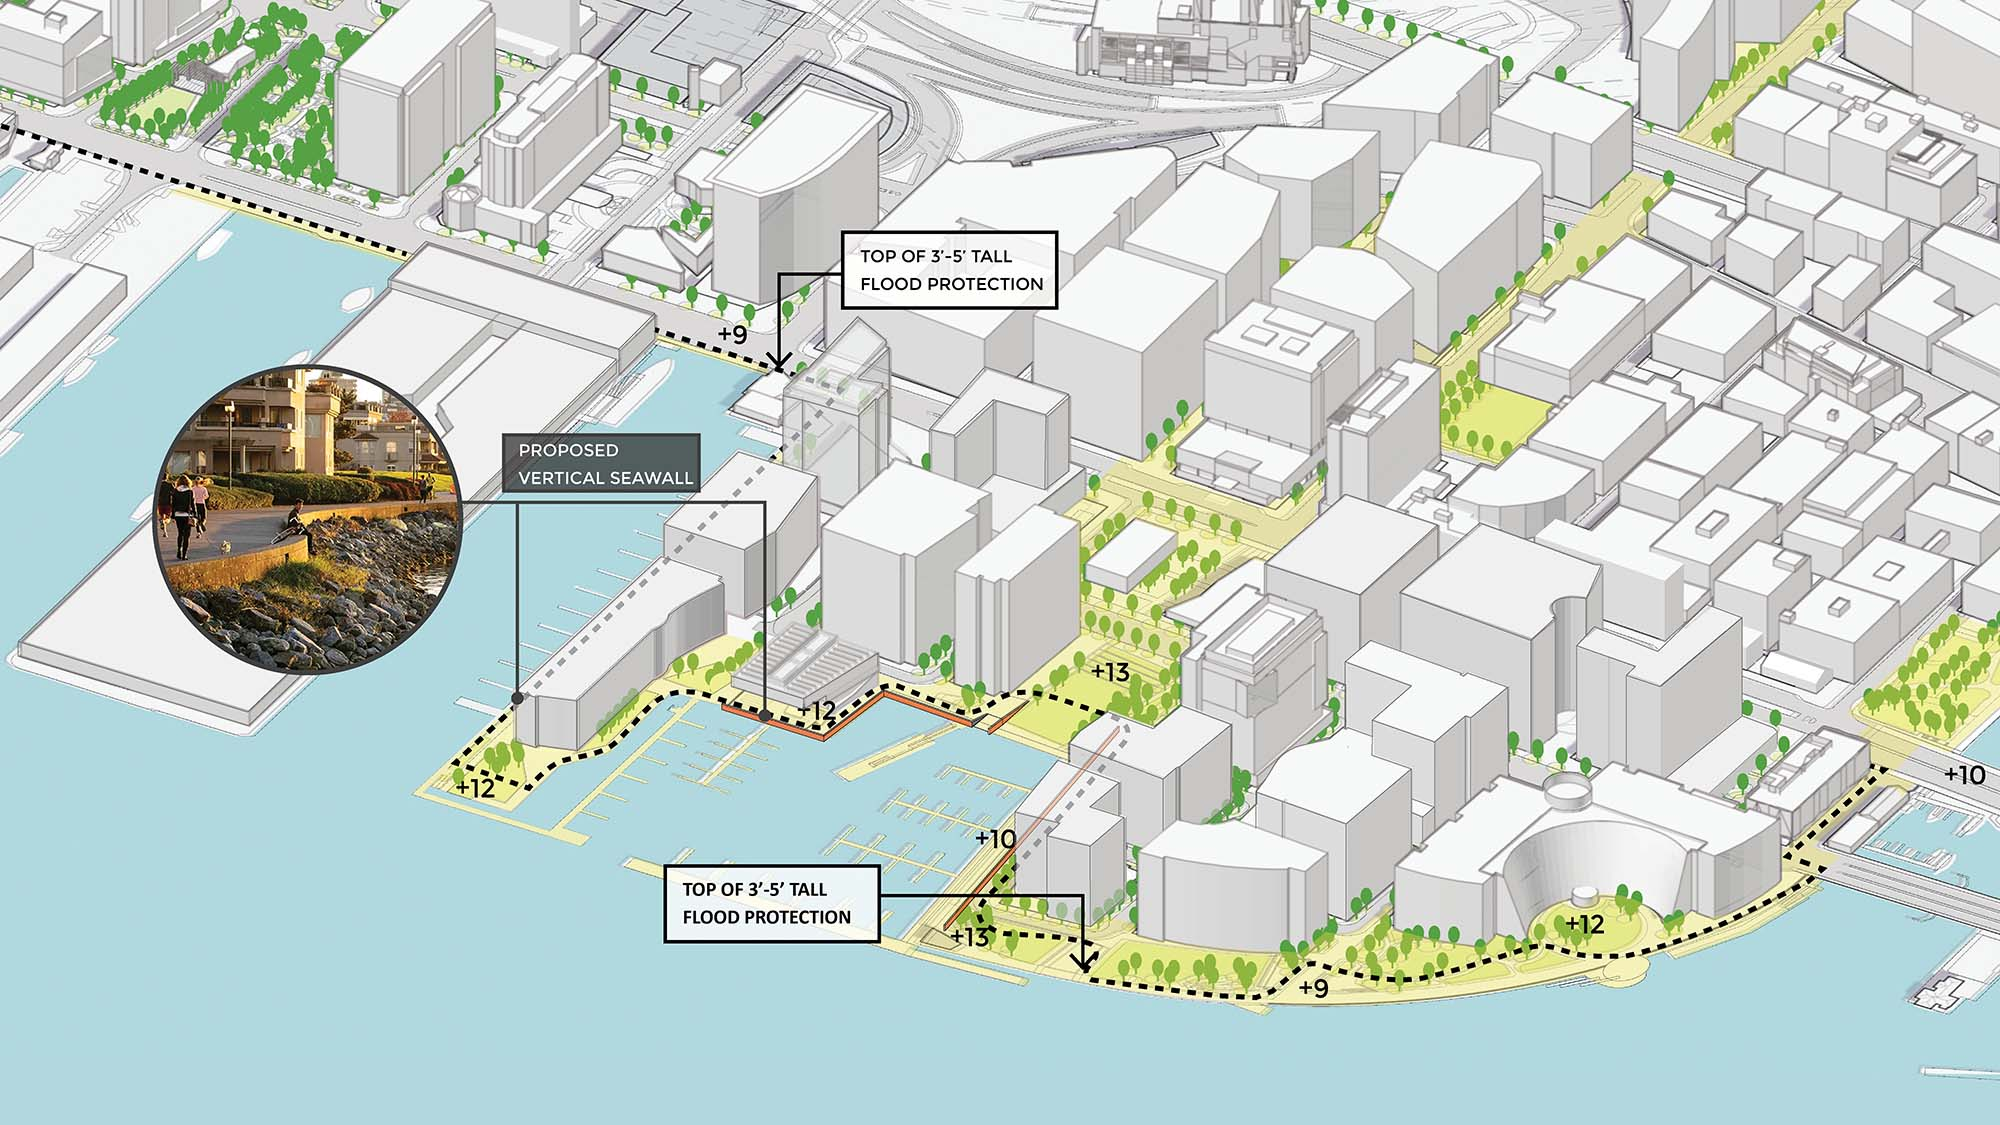 Image for south boston waterfront mid term strategy for elevation and seawall